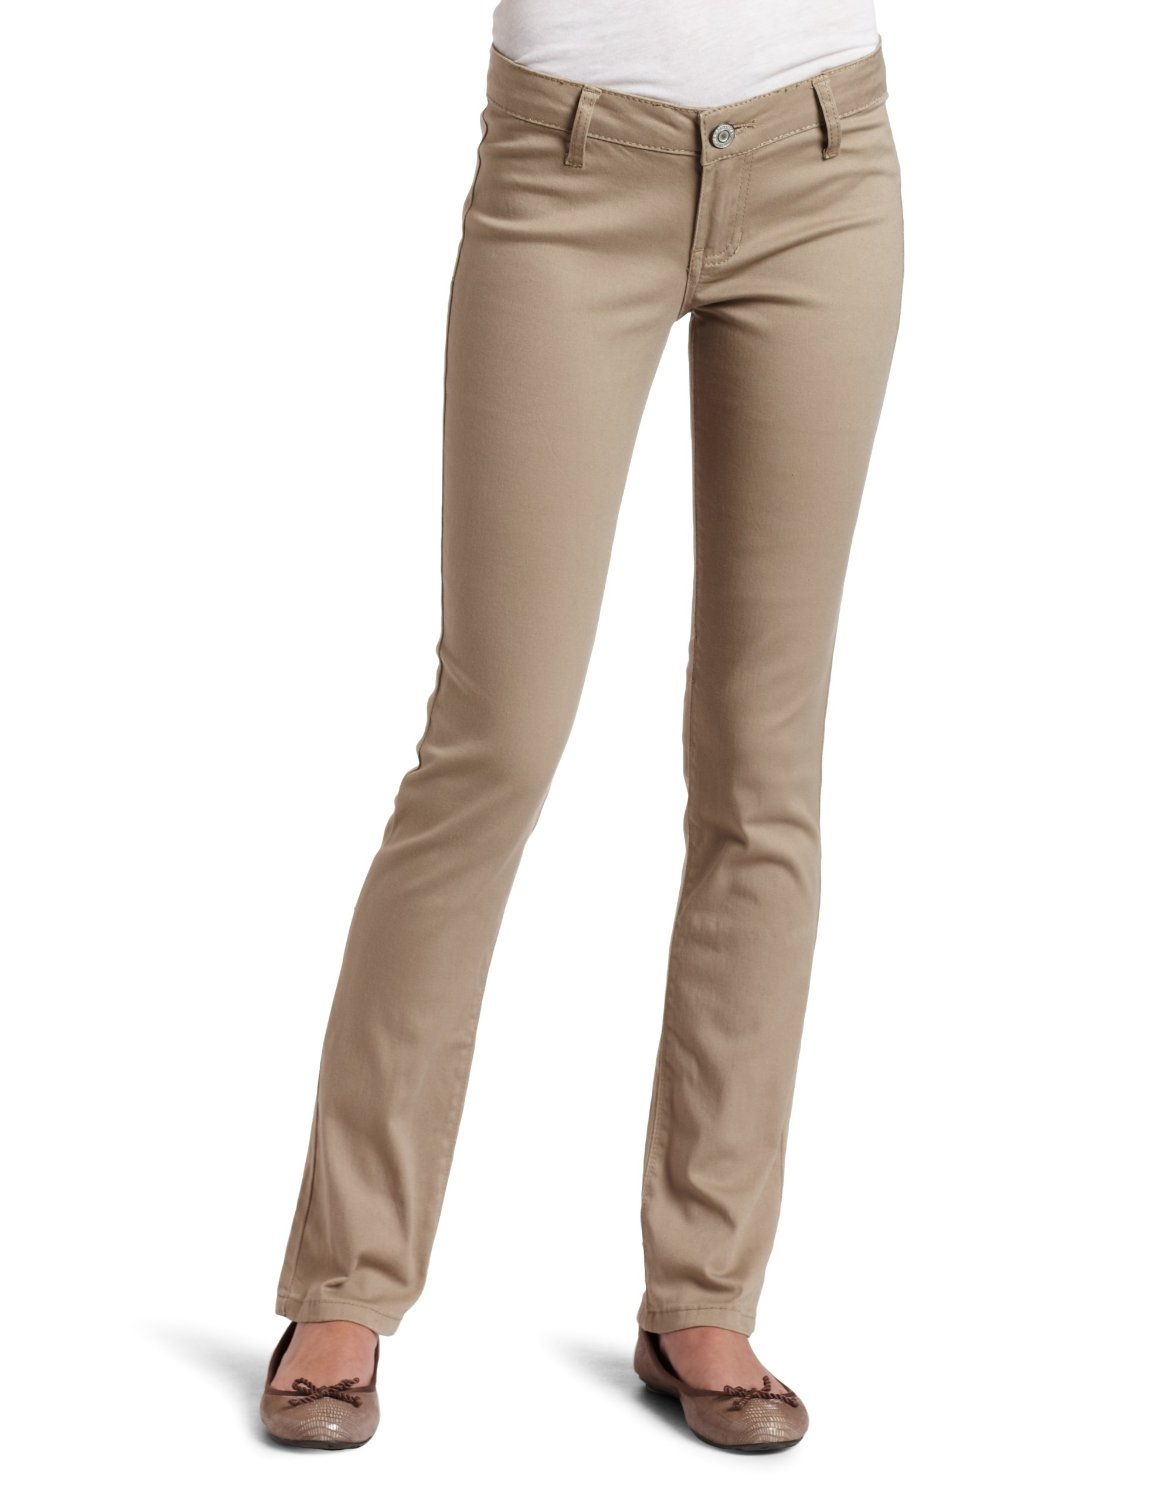 Cheap Khaki Skinny Jeans For Juniors - Jeans Am